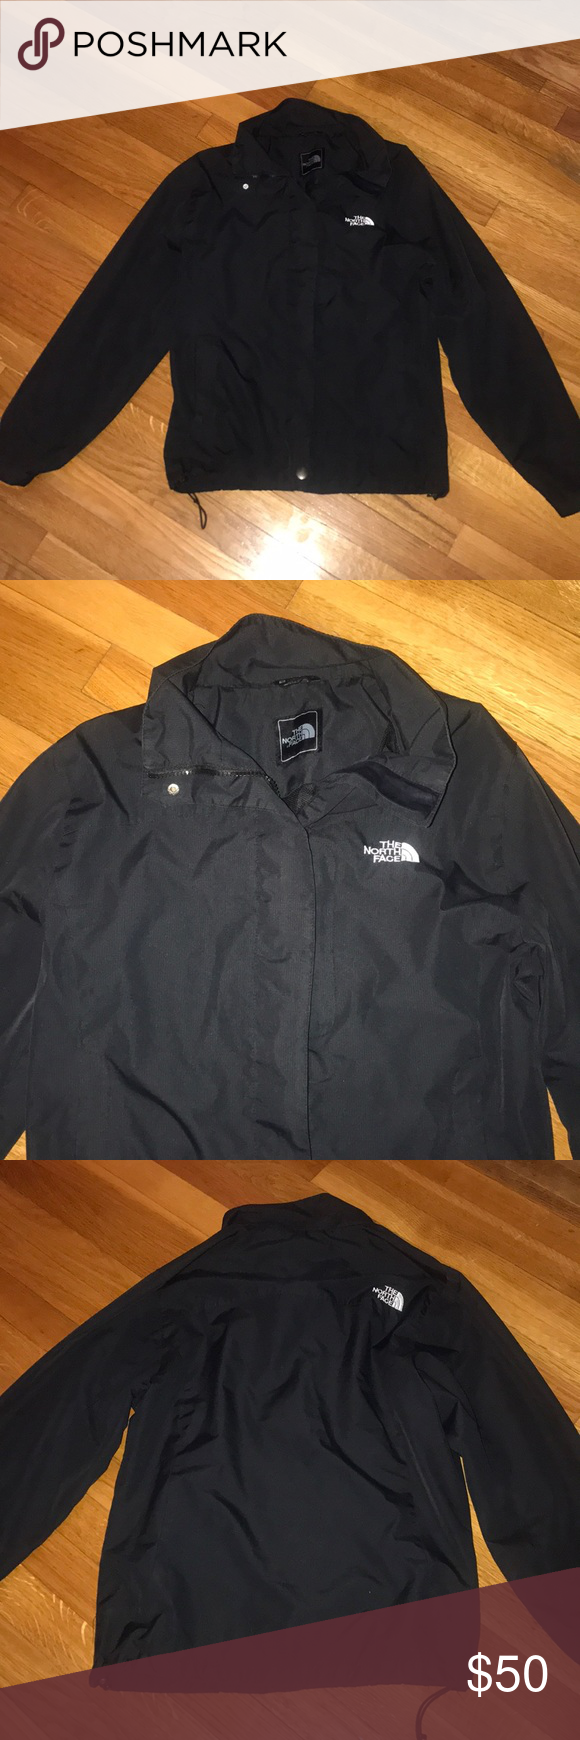 The North Face Black Jacket Black North Face Jacket Black North Face Clothes Design [ 1740 x 580 Pixel ]